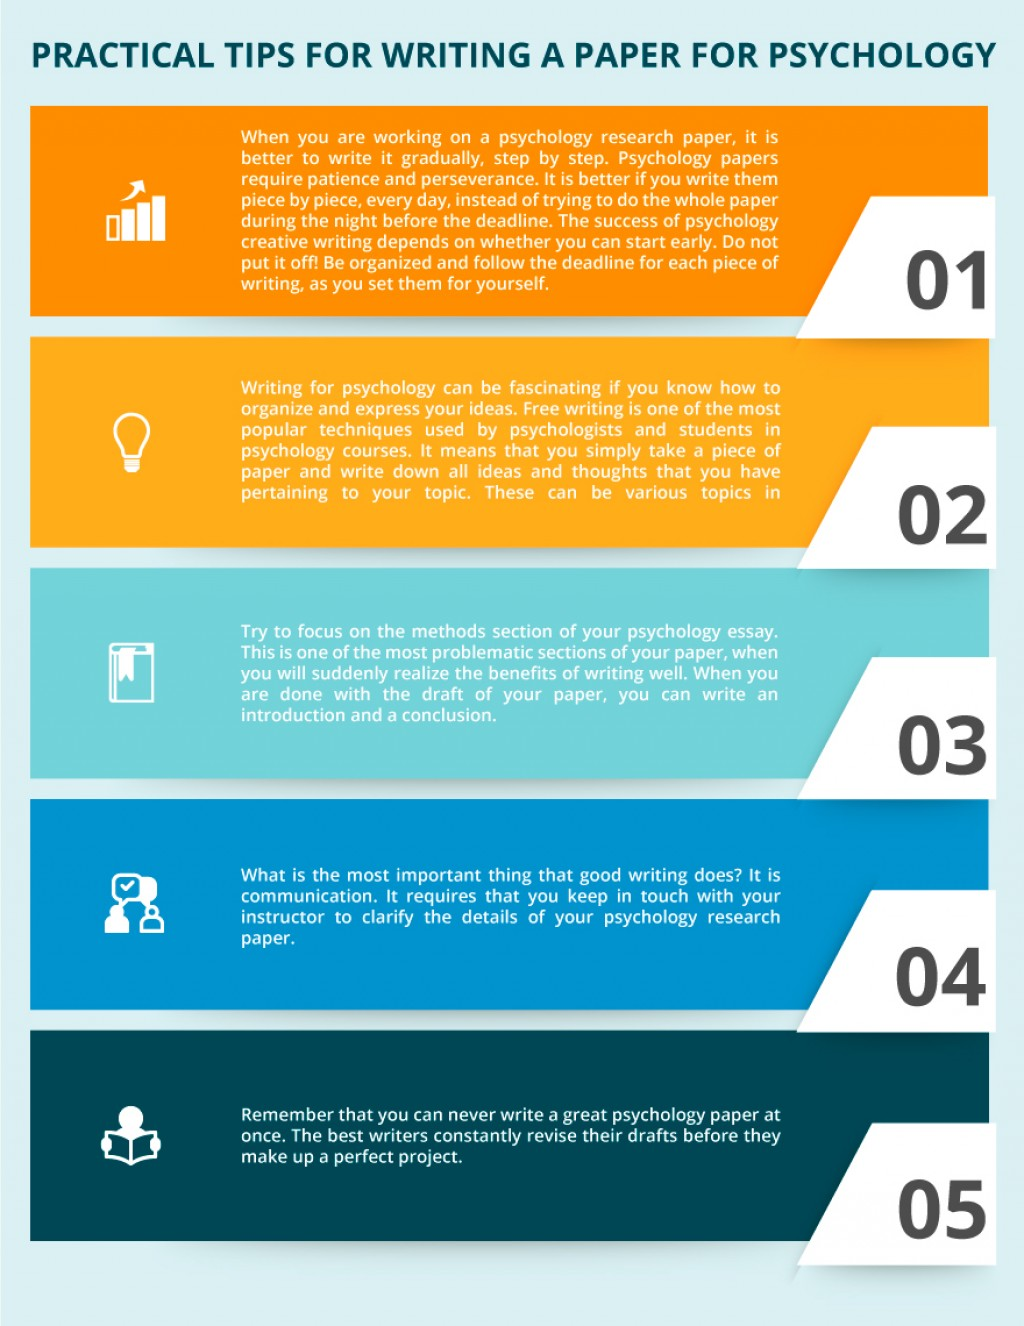 012 Research Paper Infographic Practical Tips For Writing Psychology How To Write Good Unusual A Fast Youtube Reddit Large